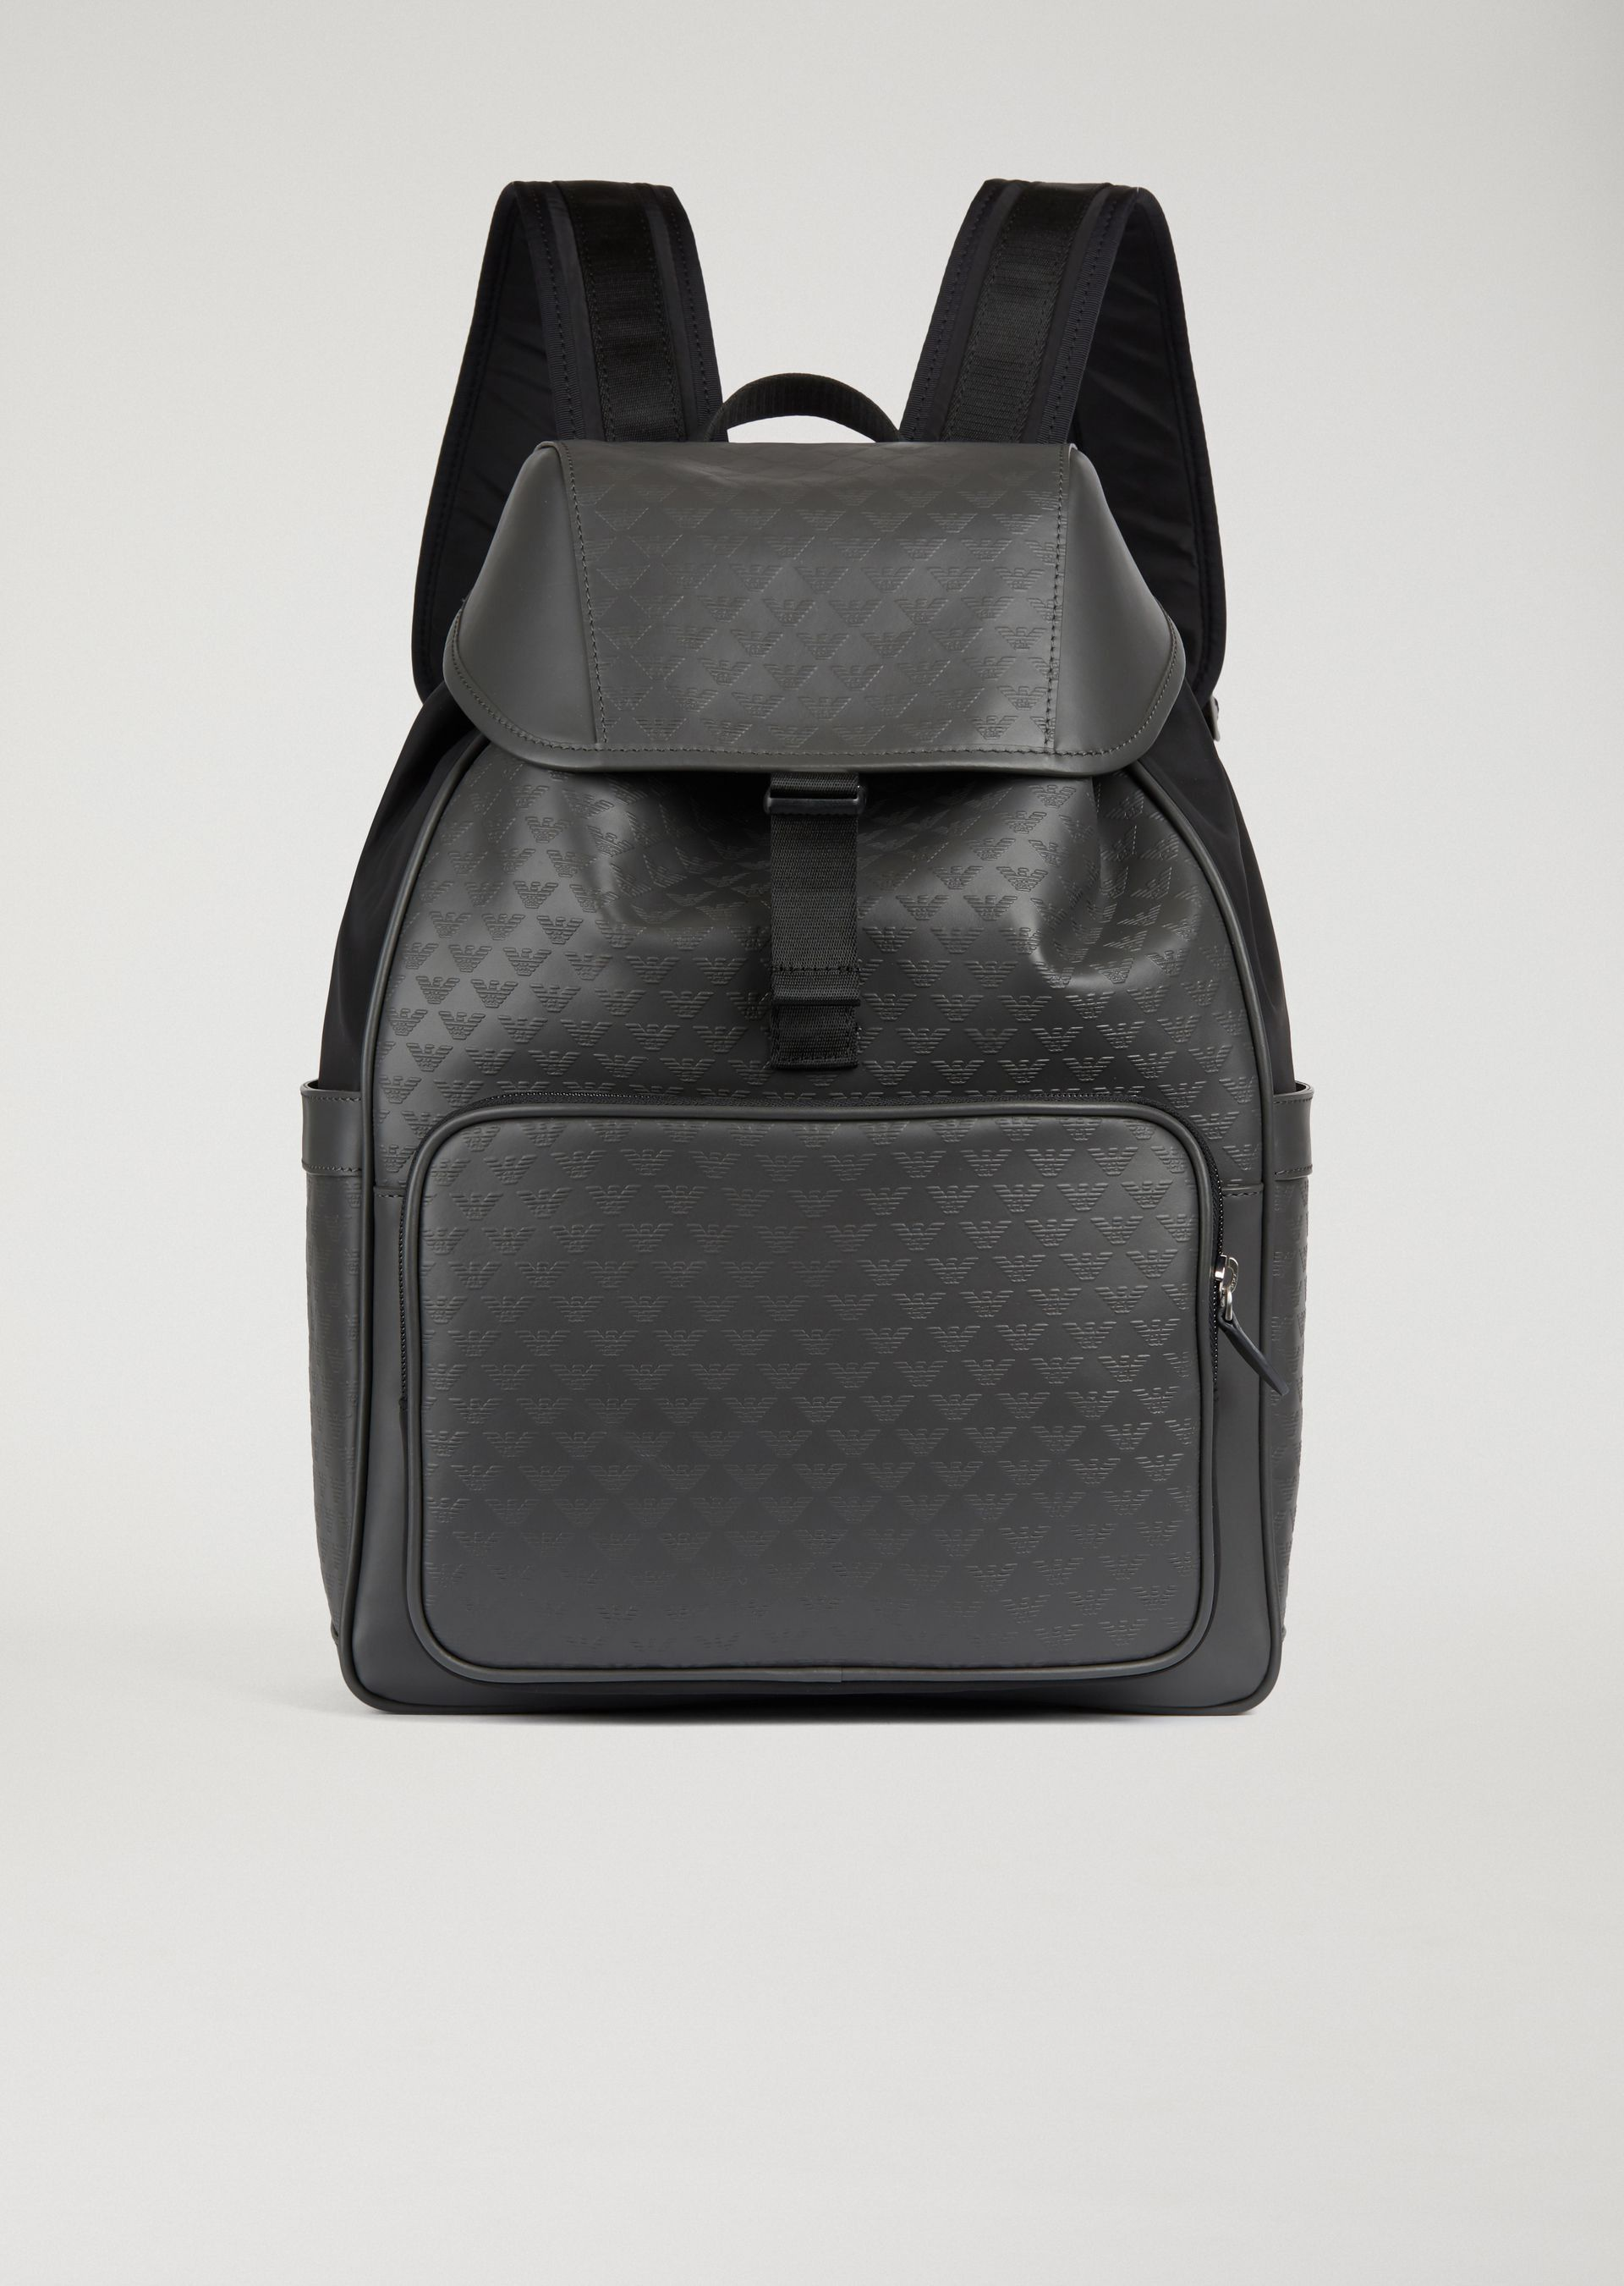 069eaf624e2d EMPORIO ARMANI LEATHER BACKPACK WITH SIDE POCKETS AND ALL-OVER LOGO PRINT.   emporioarmani  bags  leather  backpacks  metallic